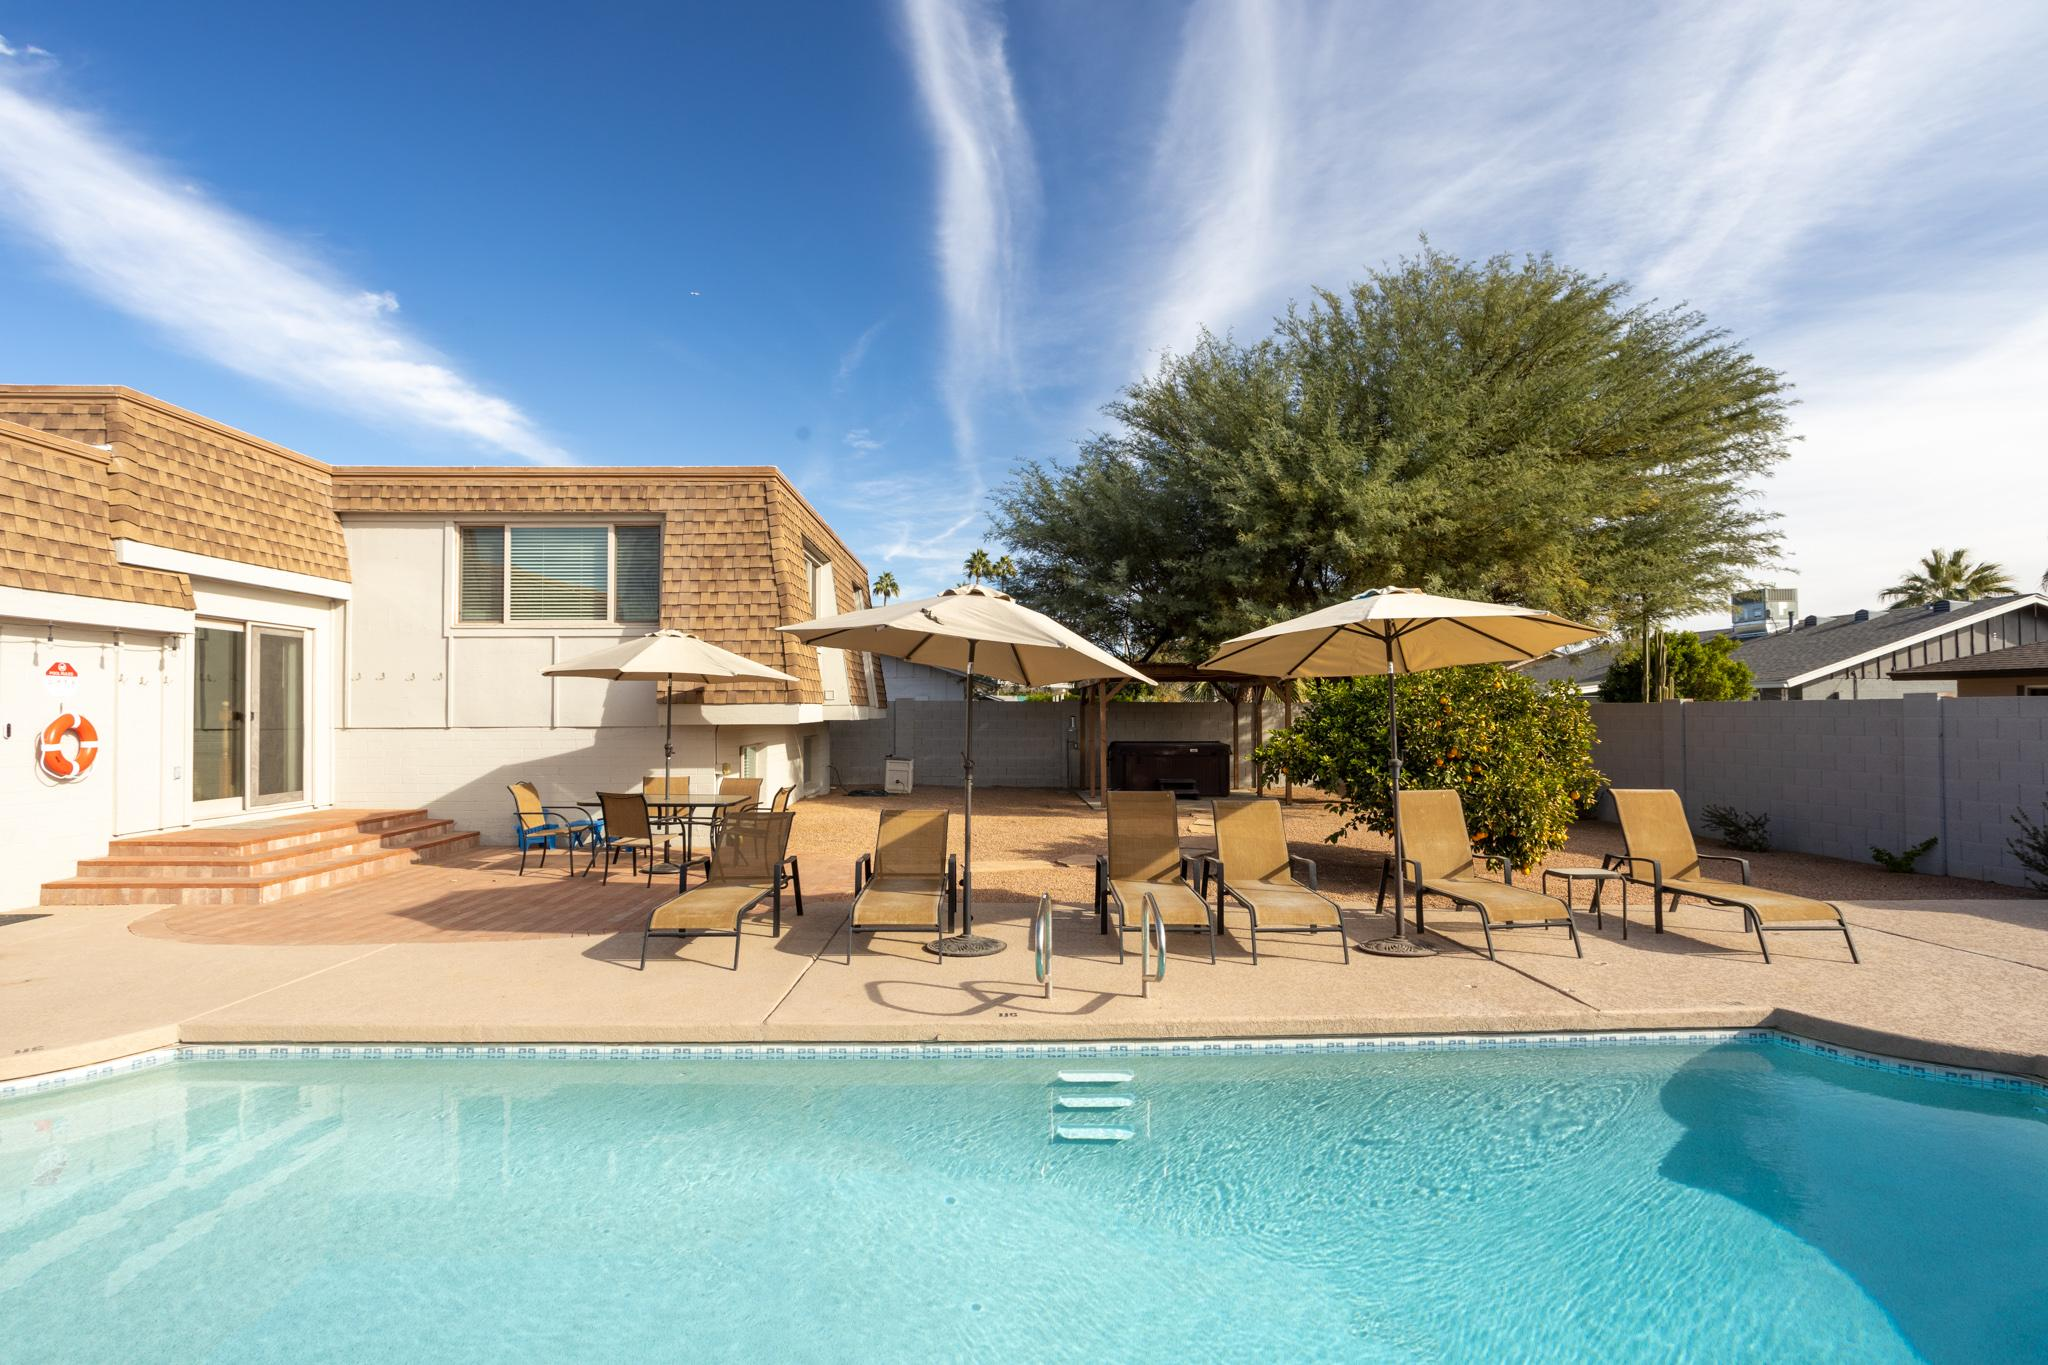 Property Image 1 - Old Town Scottsdale -Pool - New Game Room